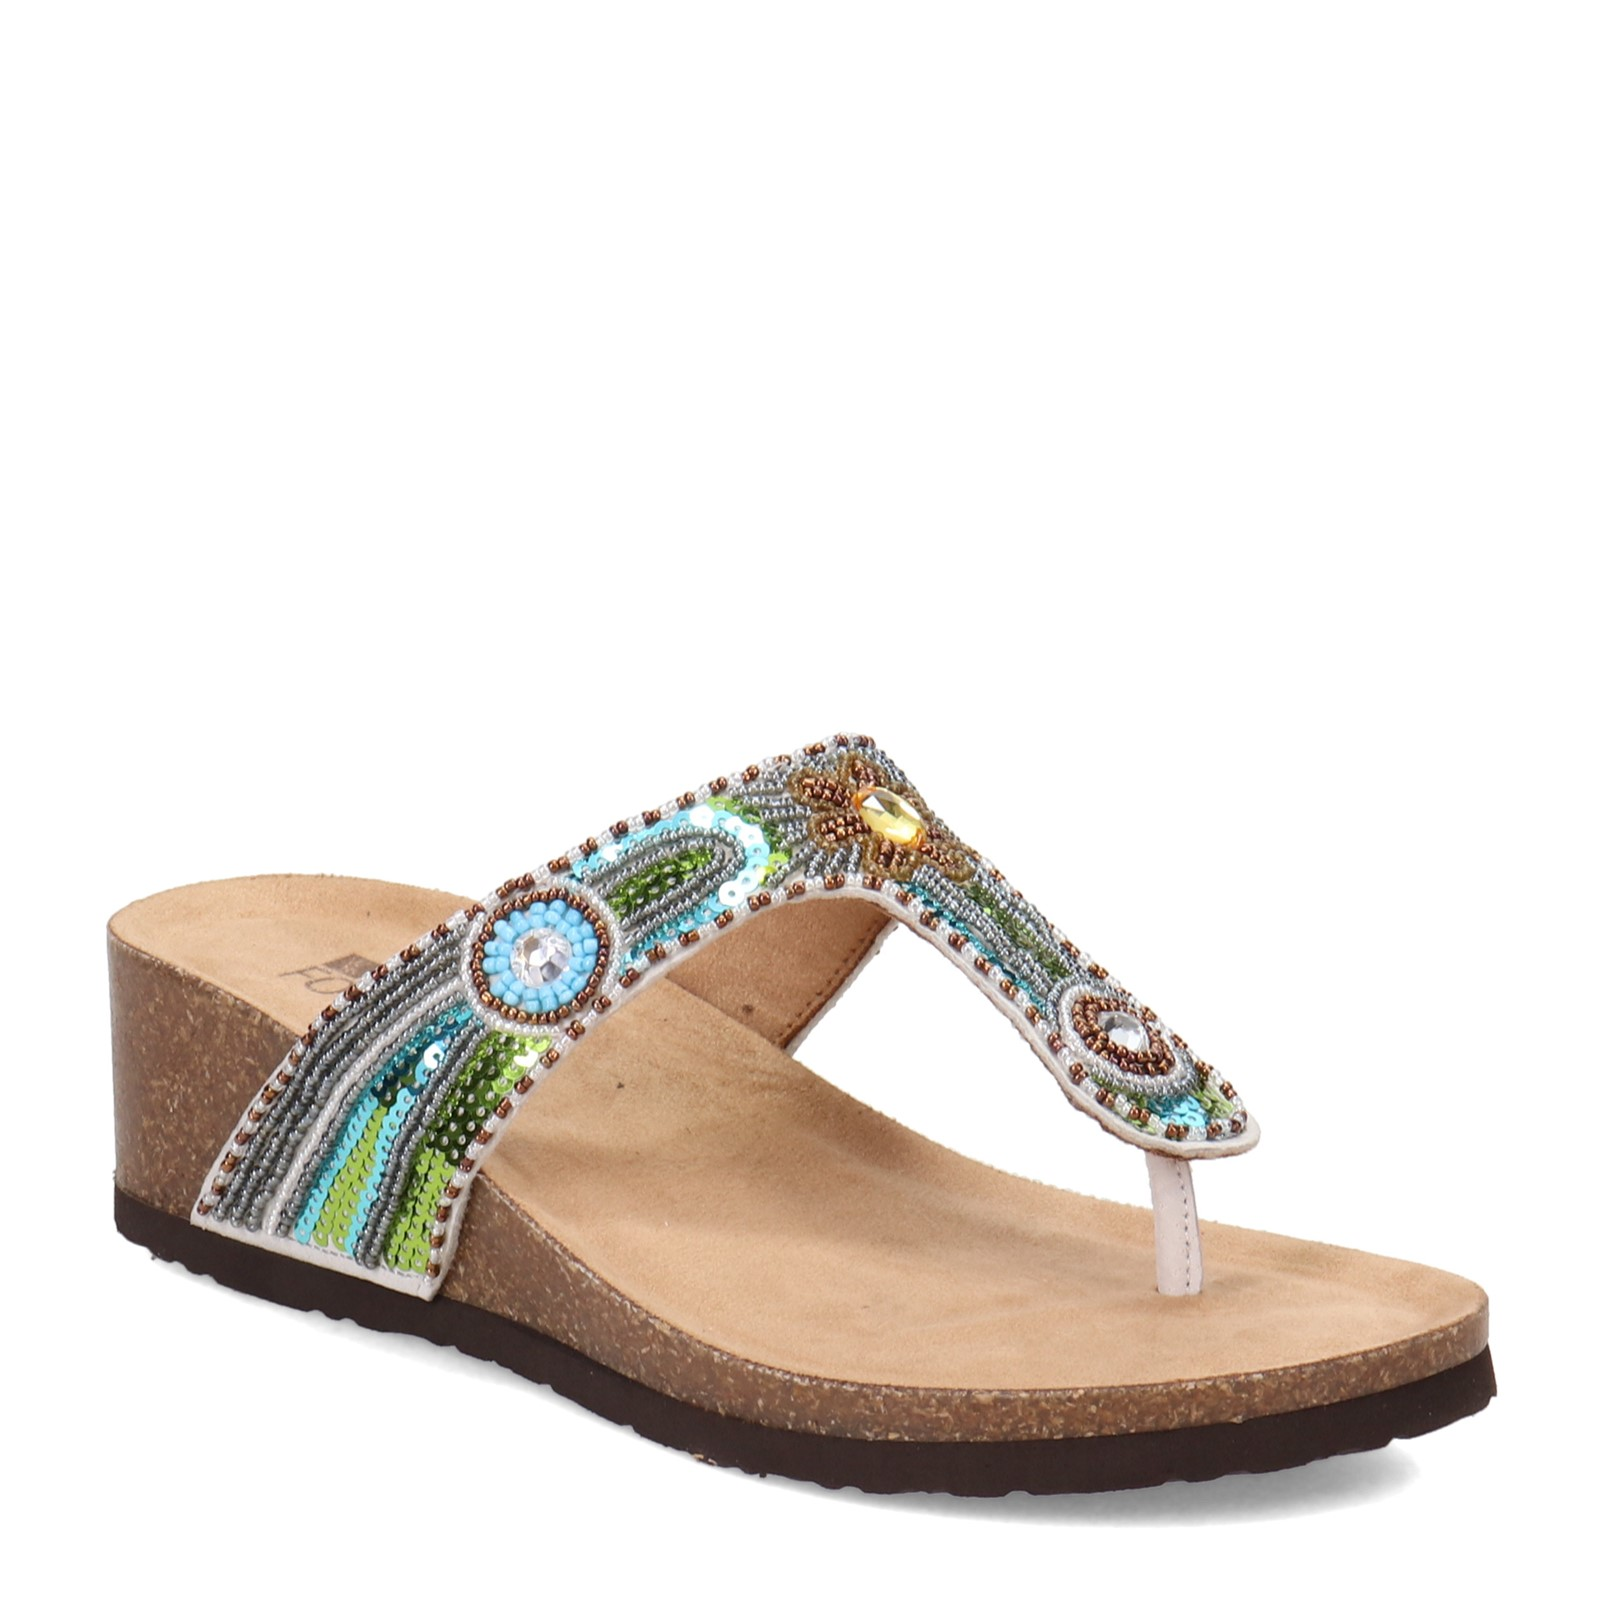 95018191937 Women's White Mountain, Bluejay thong Sandals